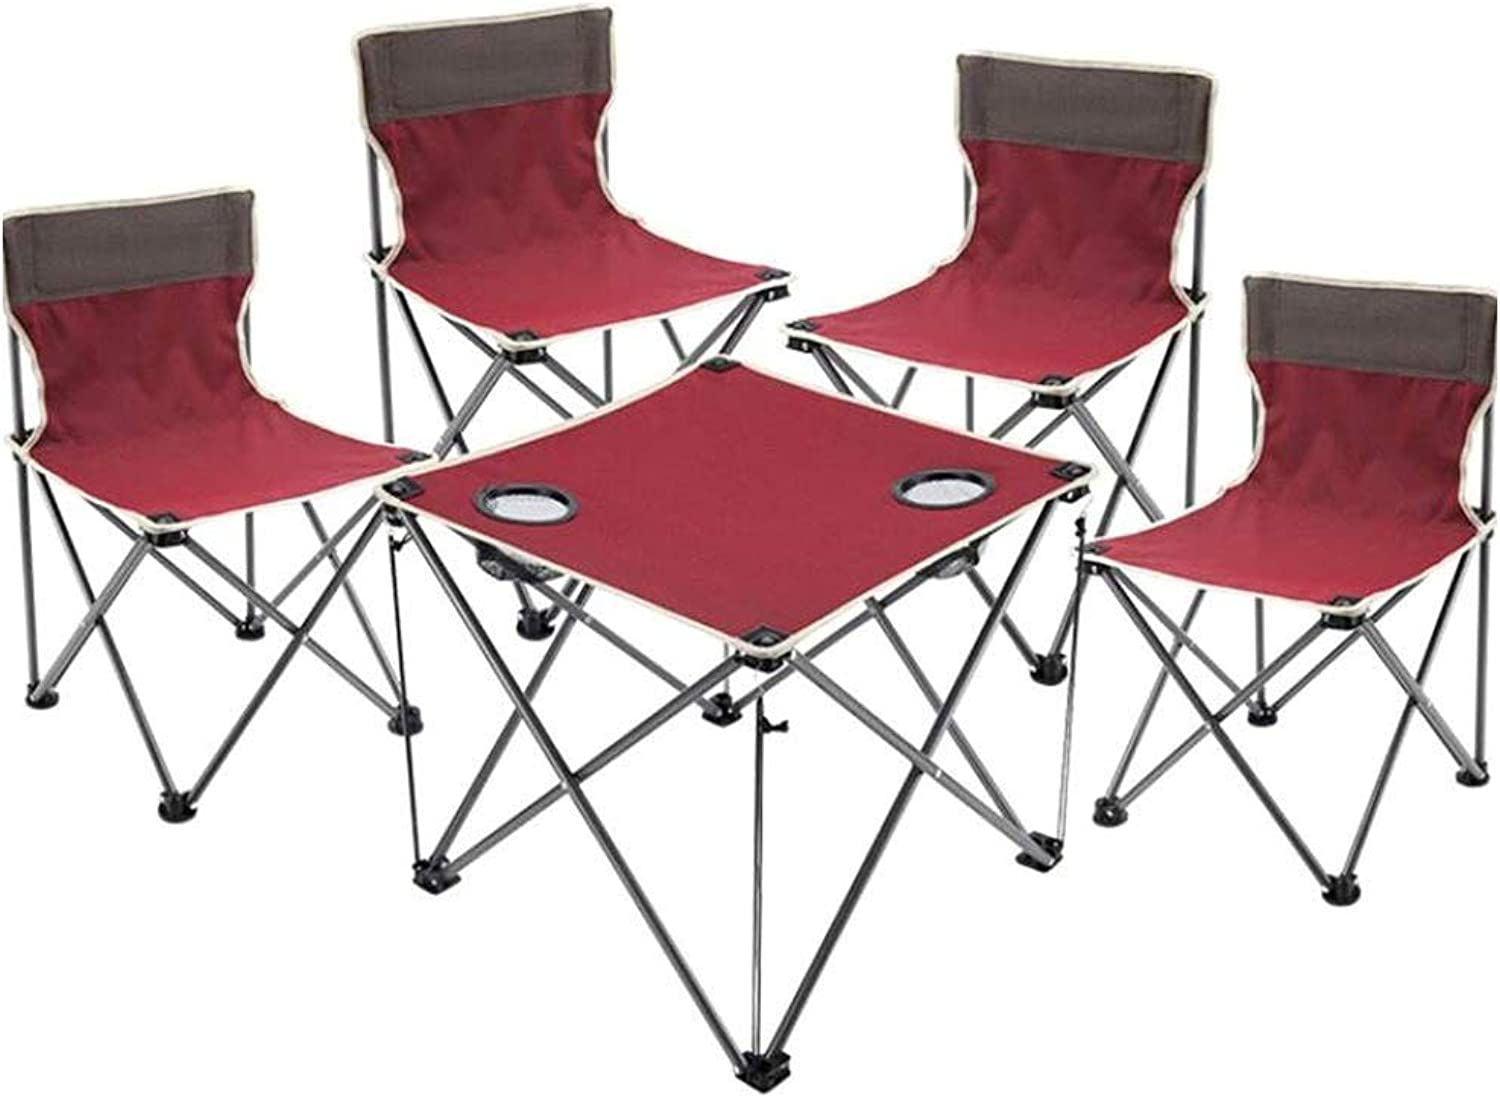 Portable Folding Table Outdoor Table and Chair Five-Piece Folding Table and Chairs Beach Chair Set Suitable for Indoor Camping Dinner Fishing, Multi-color Optional Zjnhl Folding Table (color   Red)